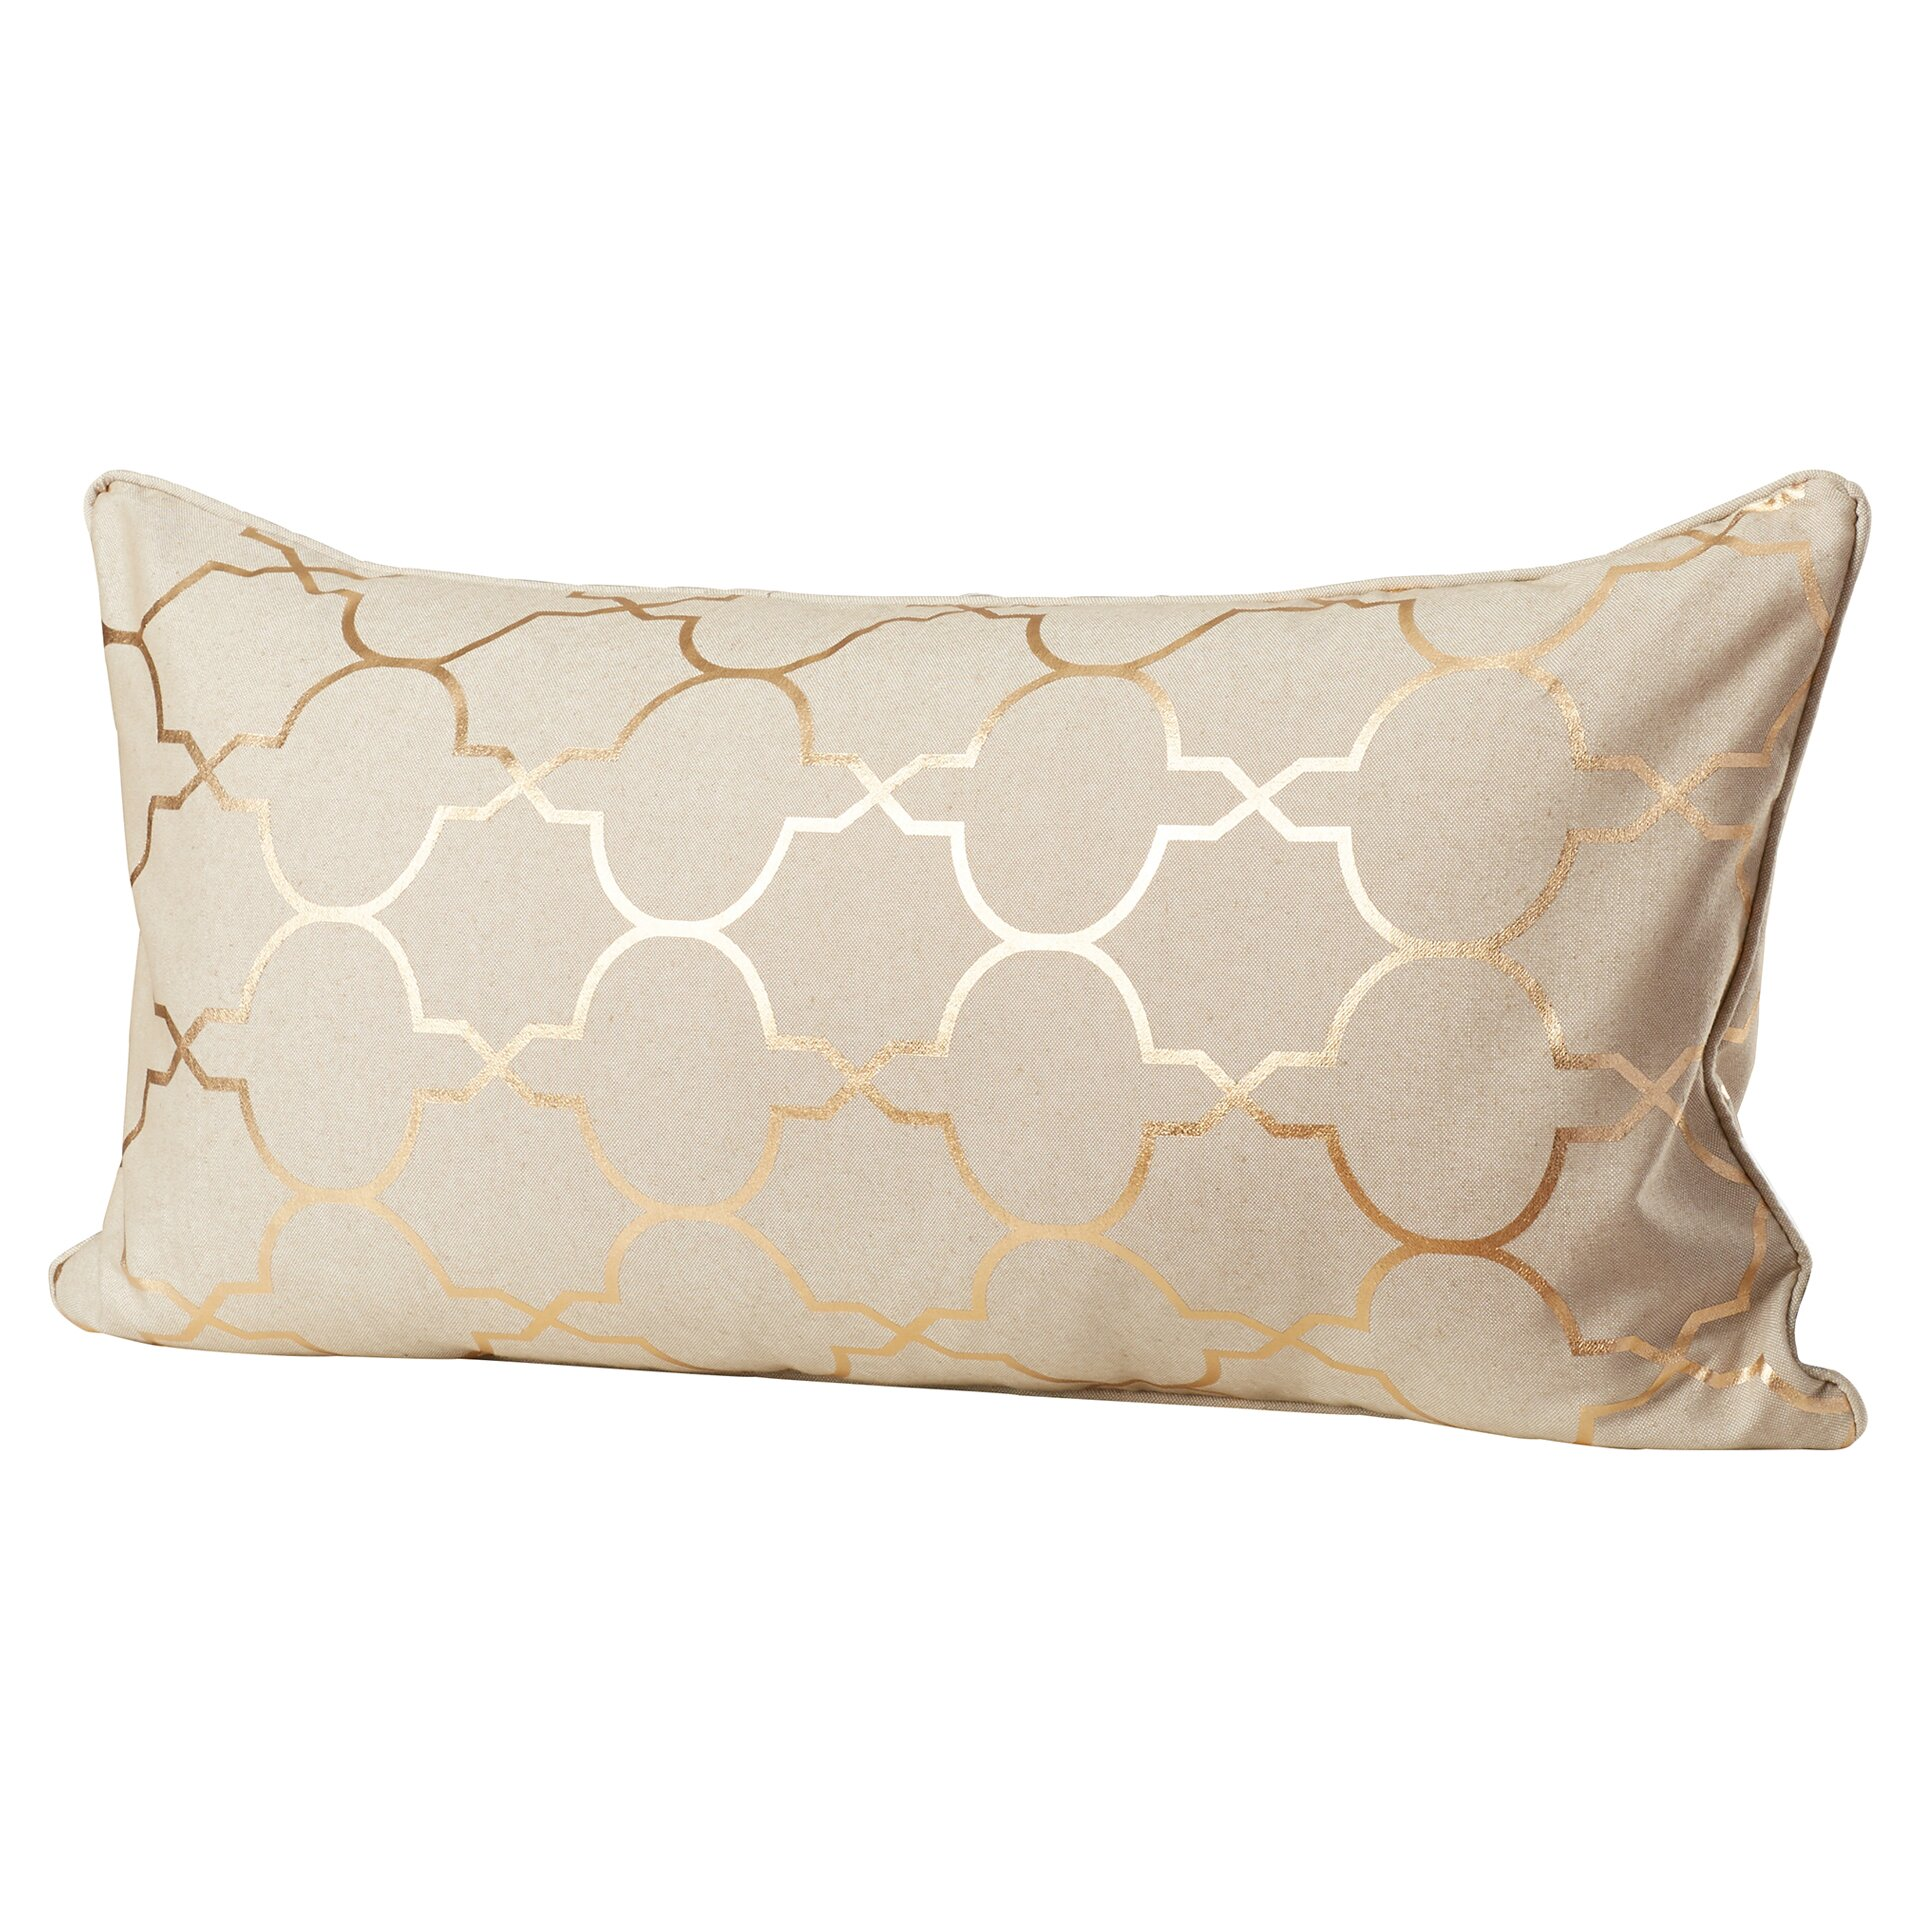 Throw Pillow Gallery : Varick Gallery Salisbury Foil Tile Throw Pillow & Reviews Wayfair